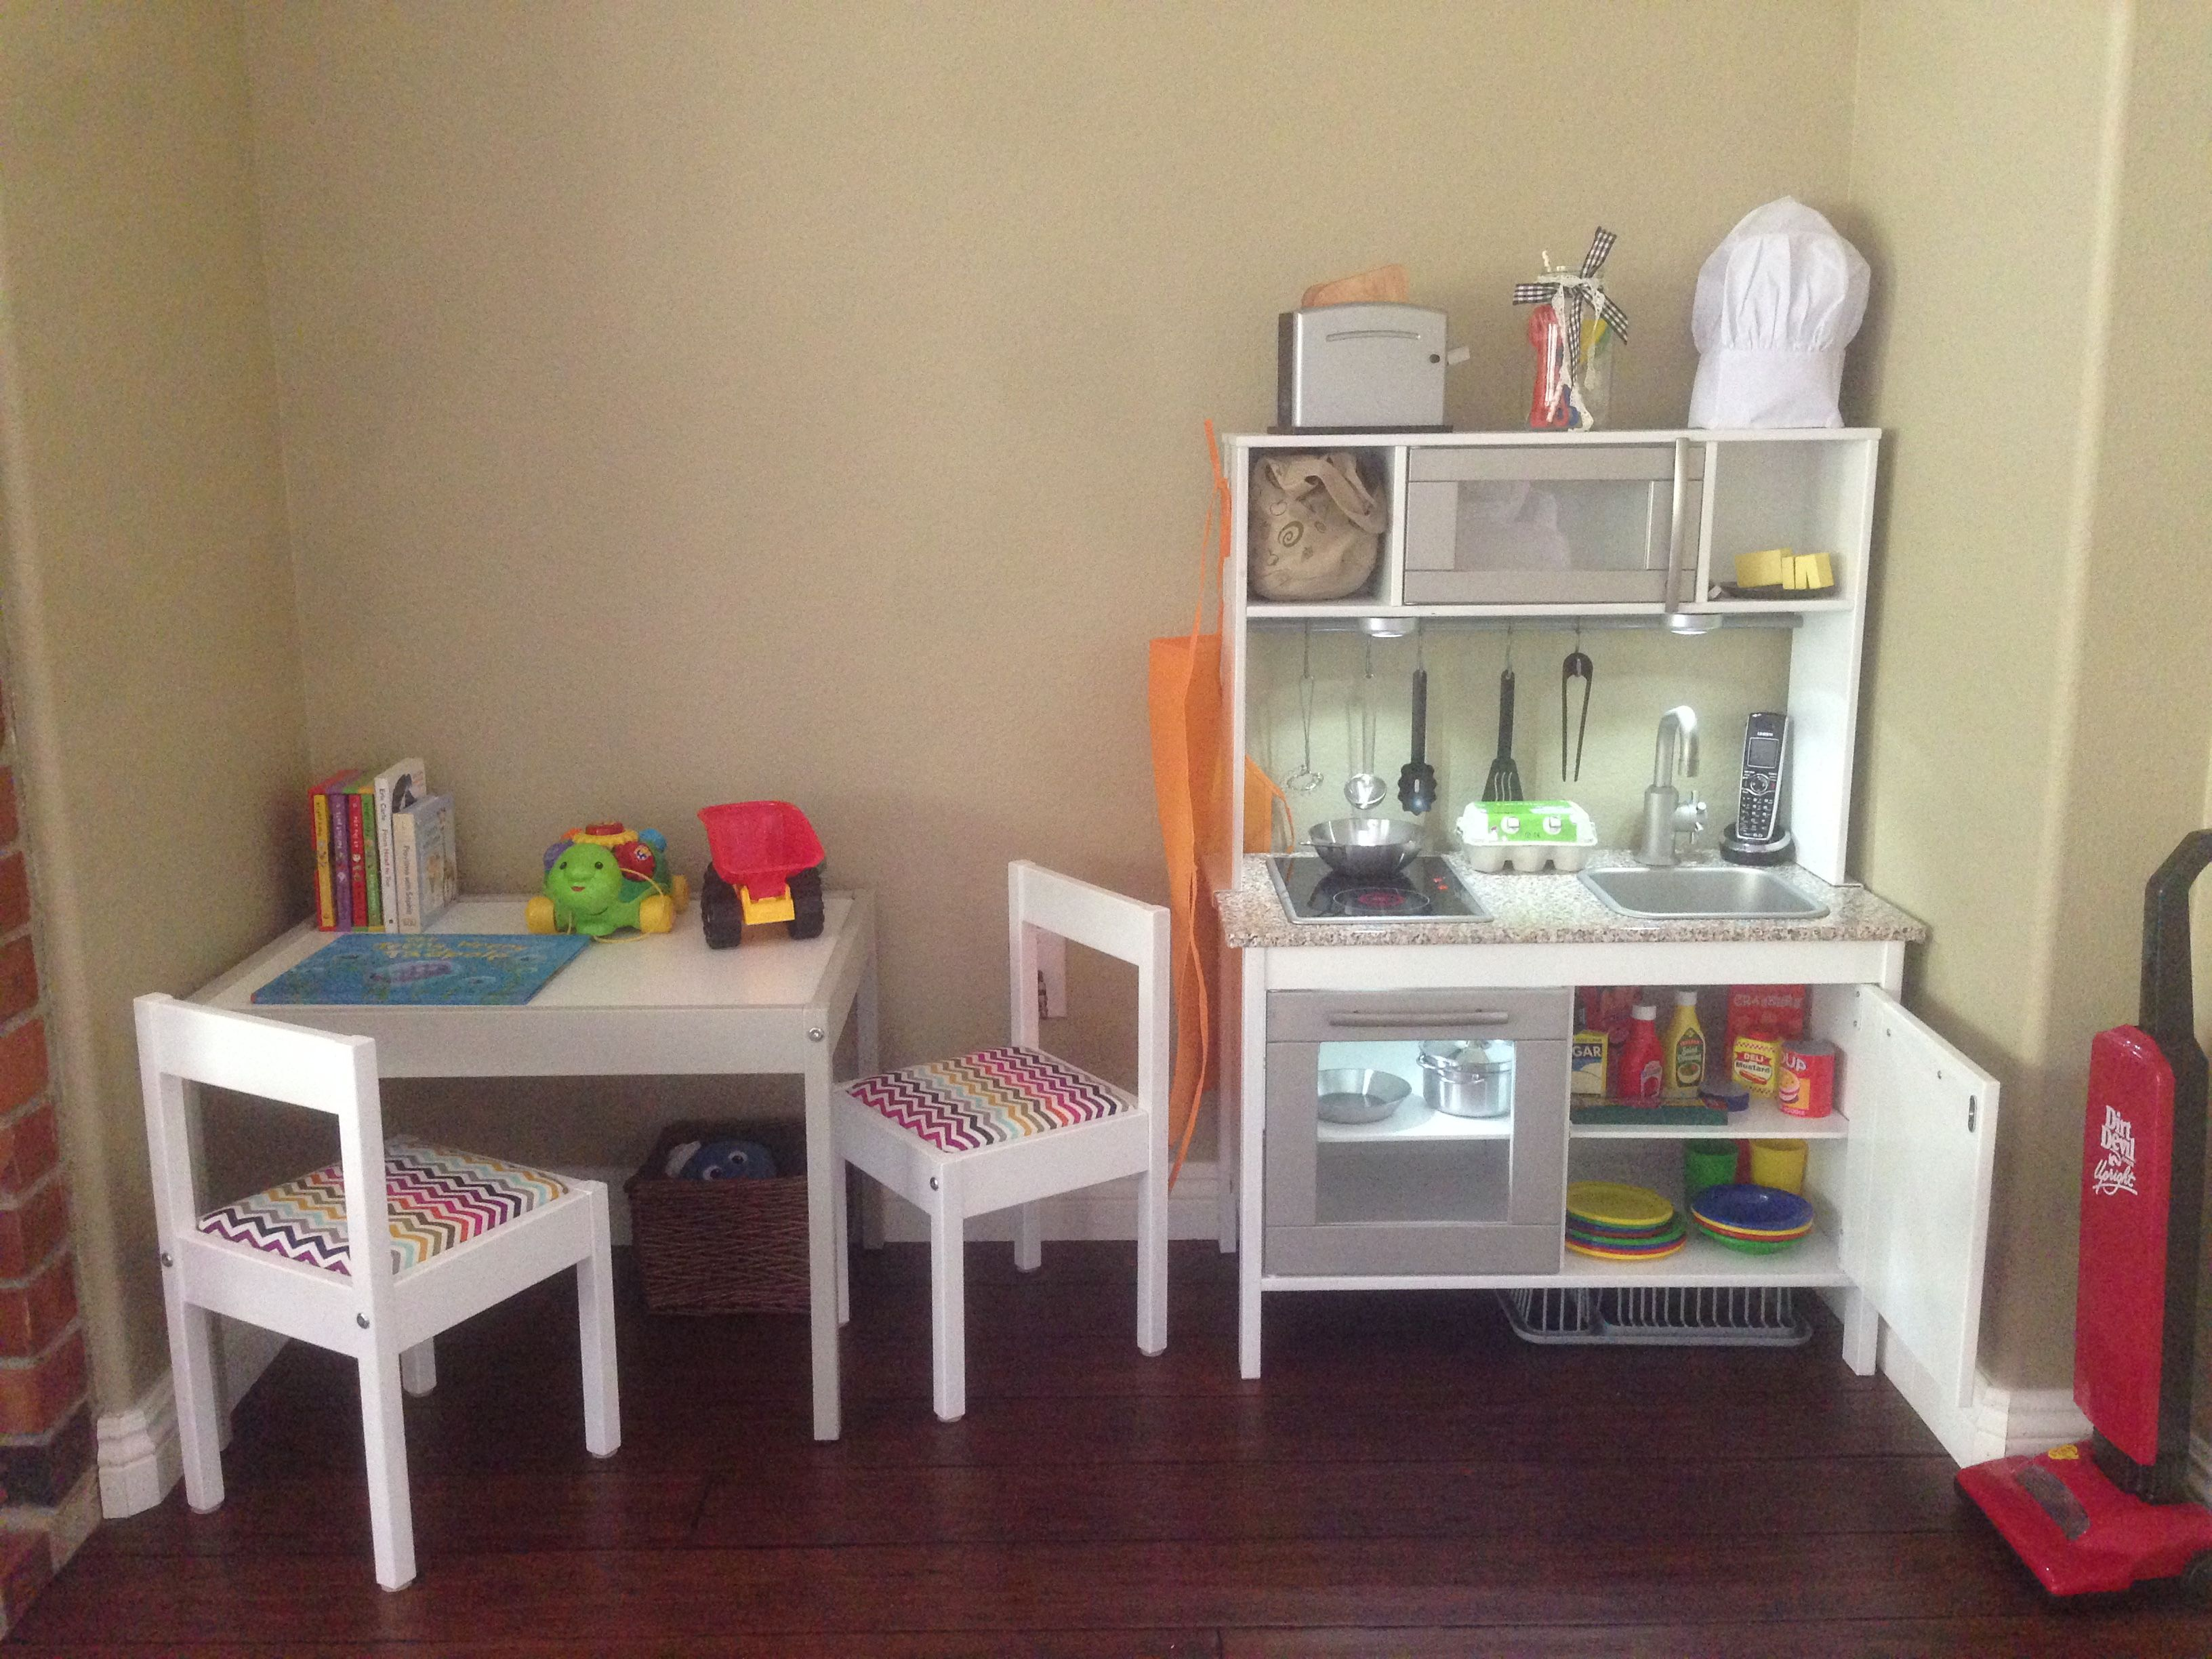 Wooden Play Kitchen Ikea ikea play kitchen duktig - google search | luke's room | pinterest